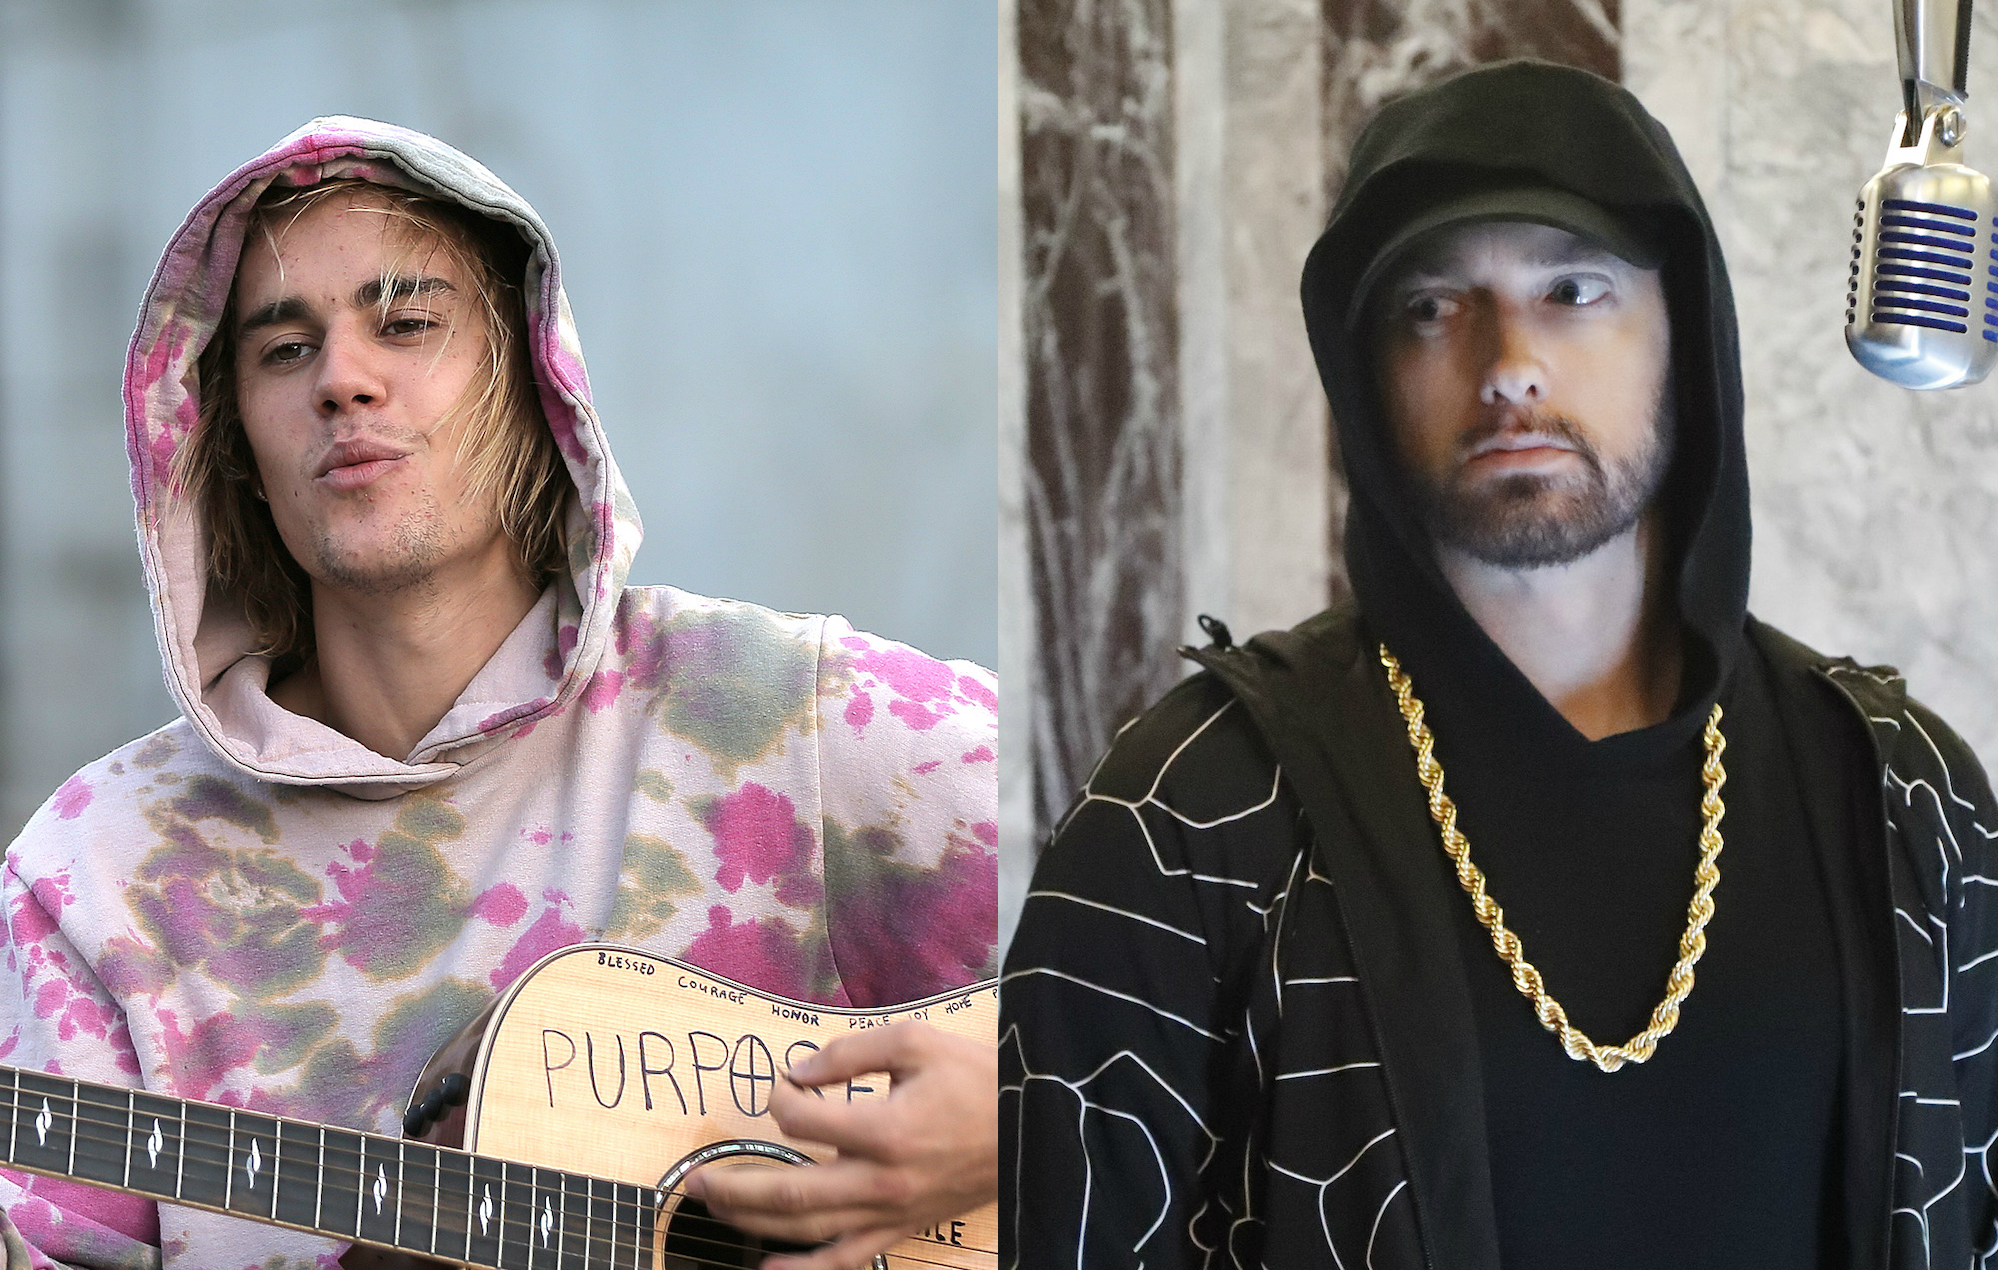 eminem-reportedly-laughed-reading-justin-biebers-criticism-of-his-album